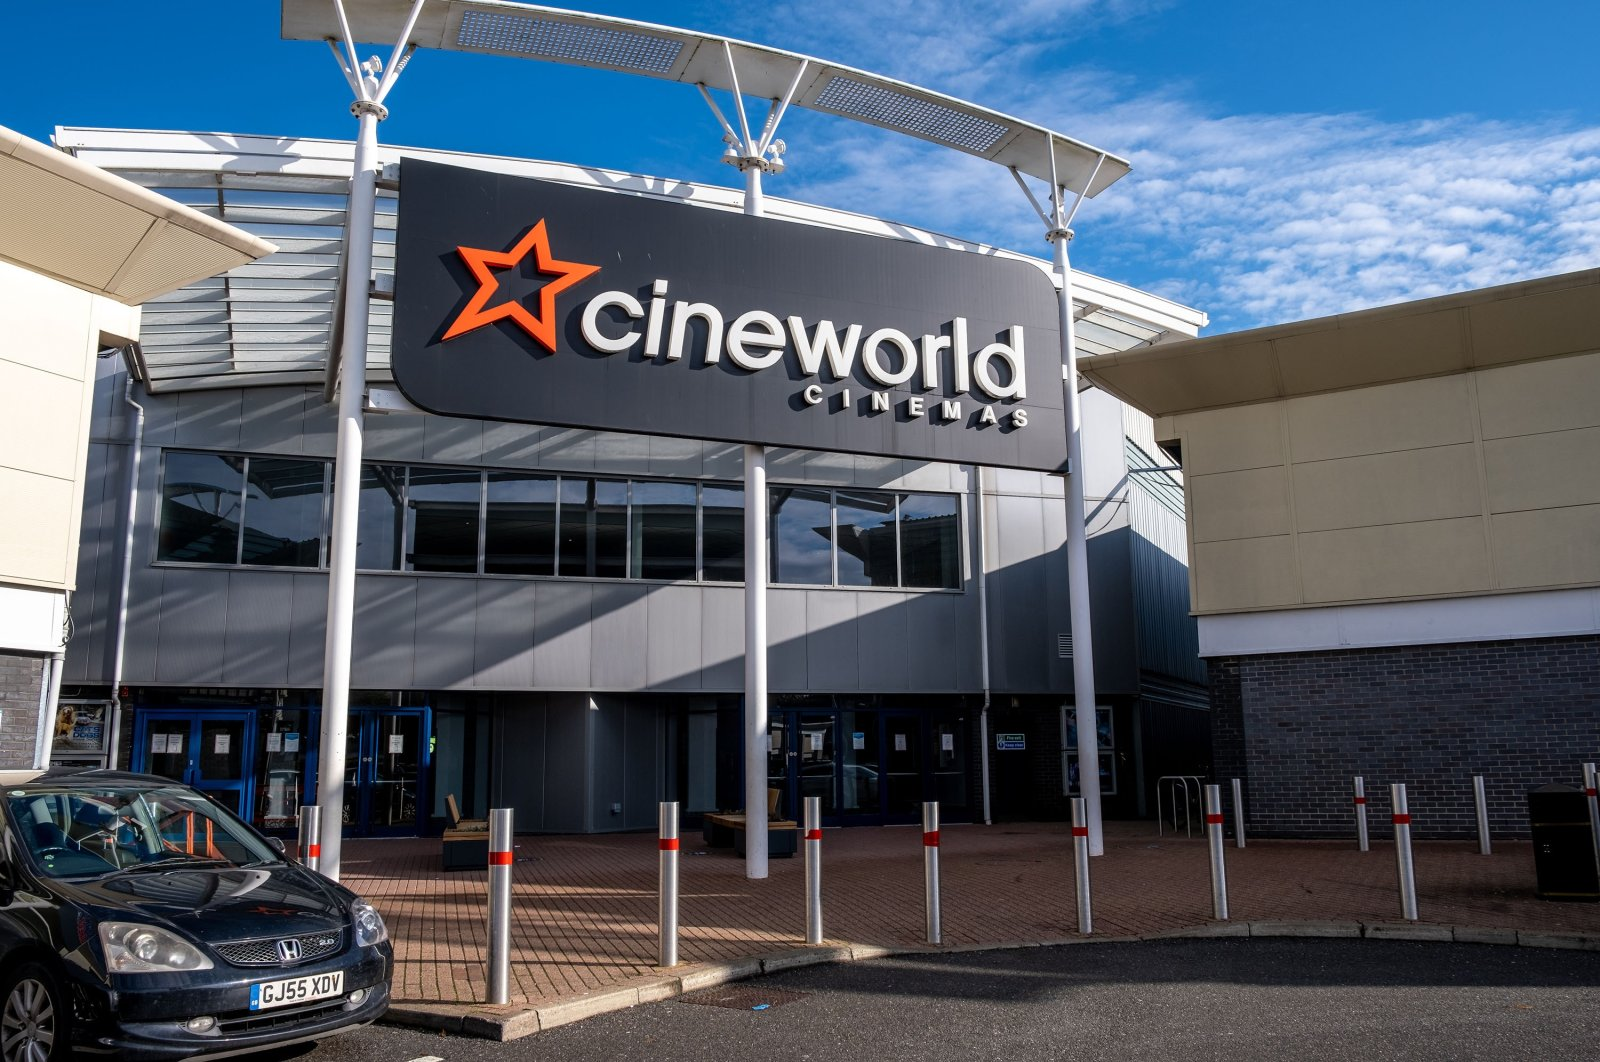 The entrance of one of the Cineworld buildings in Harlow, the U.K., Oct. 5, 2020. (Shutterstock Photo)